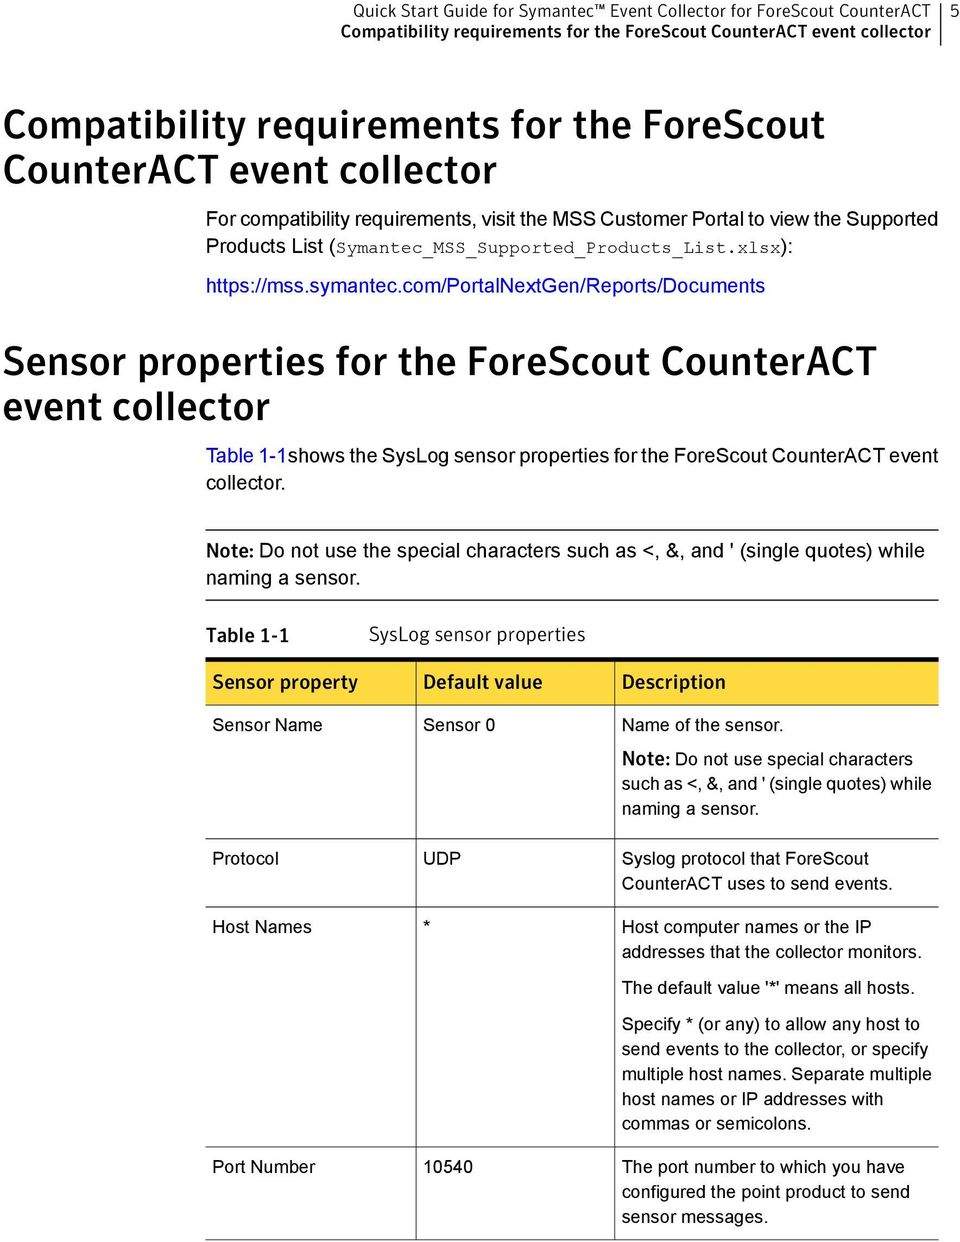 com/portalnextgen/reports/documents Sensor properties for the ForeScout CounterACT event collector Table 1-1shows the SysLog sensor properties for the ForeScout CounterACT event collector.